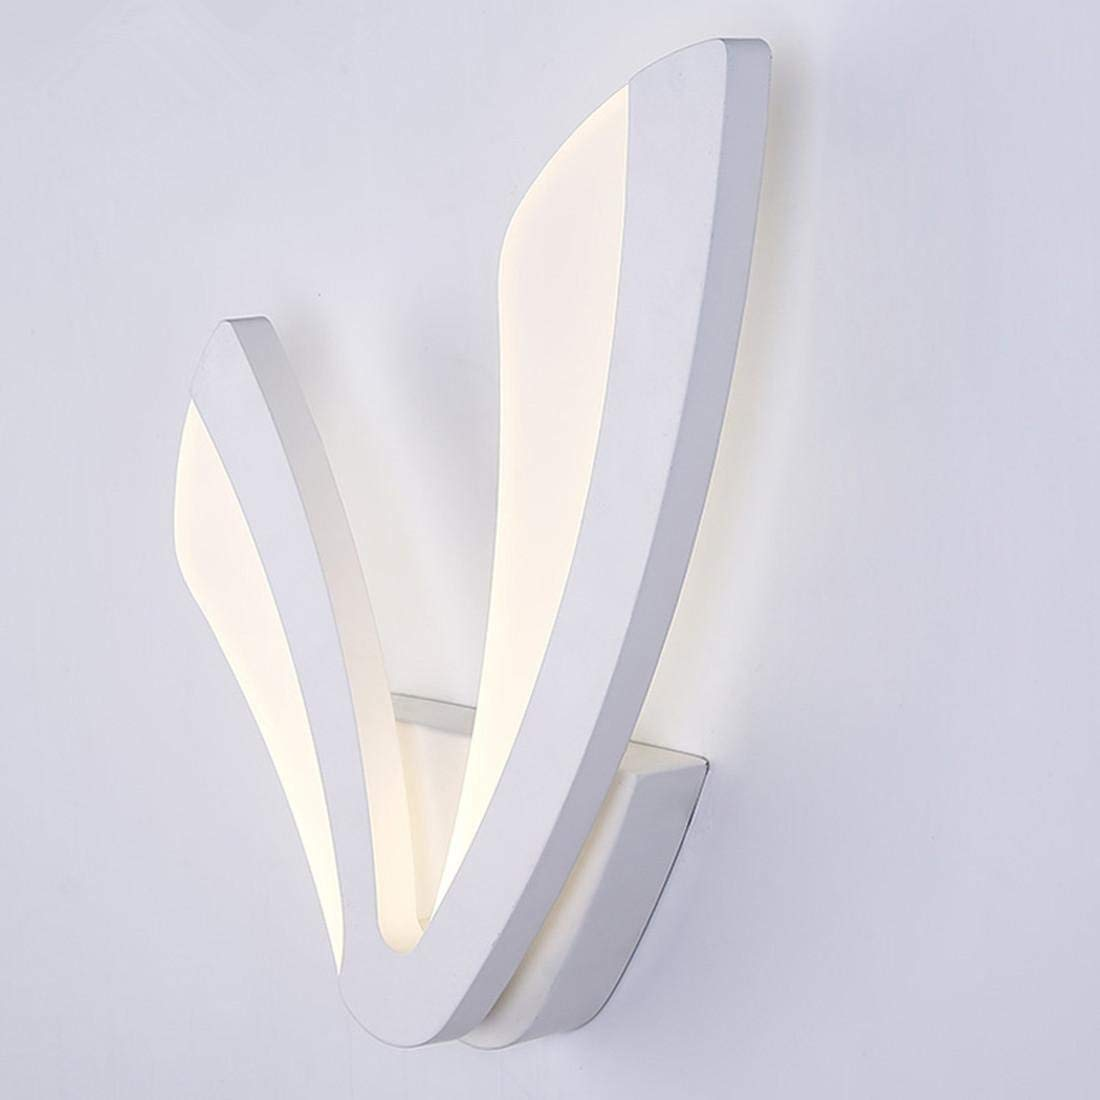 OVIIVO Creative Table Lamp Desk Lamp LED Wall Lamp for Bathroom Bedroom 12W Wall Sconce White Indoor Lighting Lamp AC100-265V LED Wall Light Indoor Lighting, Using for Reading, Working